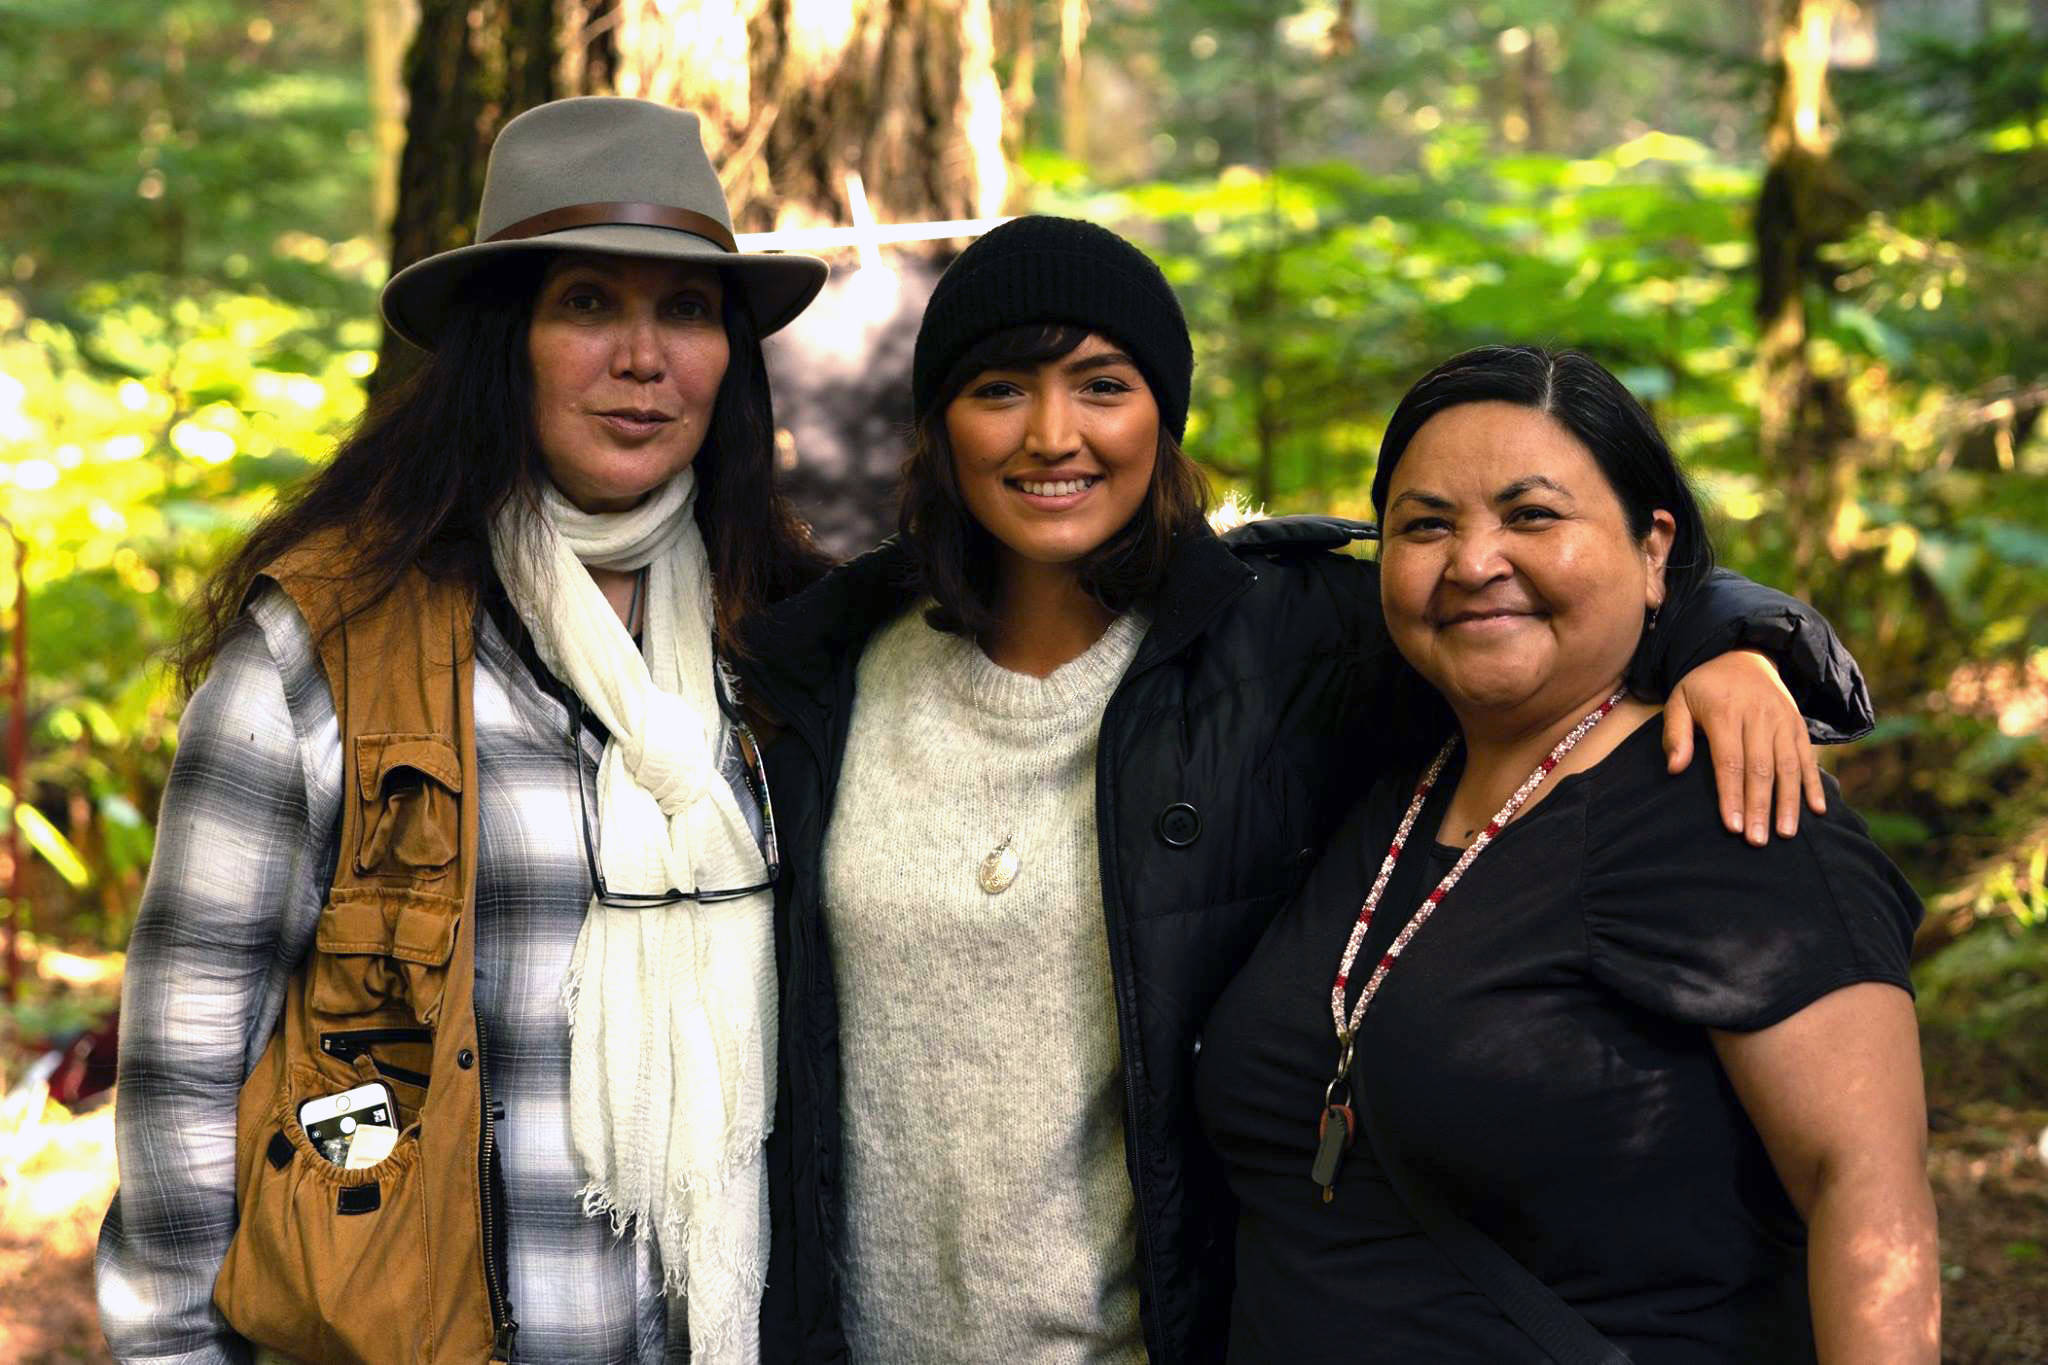 Director Loretta Sarah Todd, lead actress Grace Dove, and author Eden Robinson (L-R) behind the scenes. (VIFF Media)